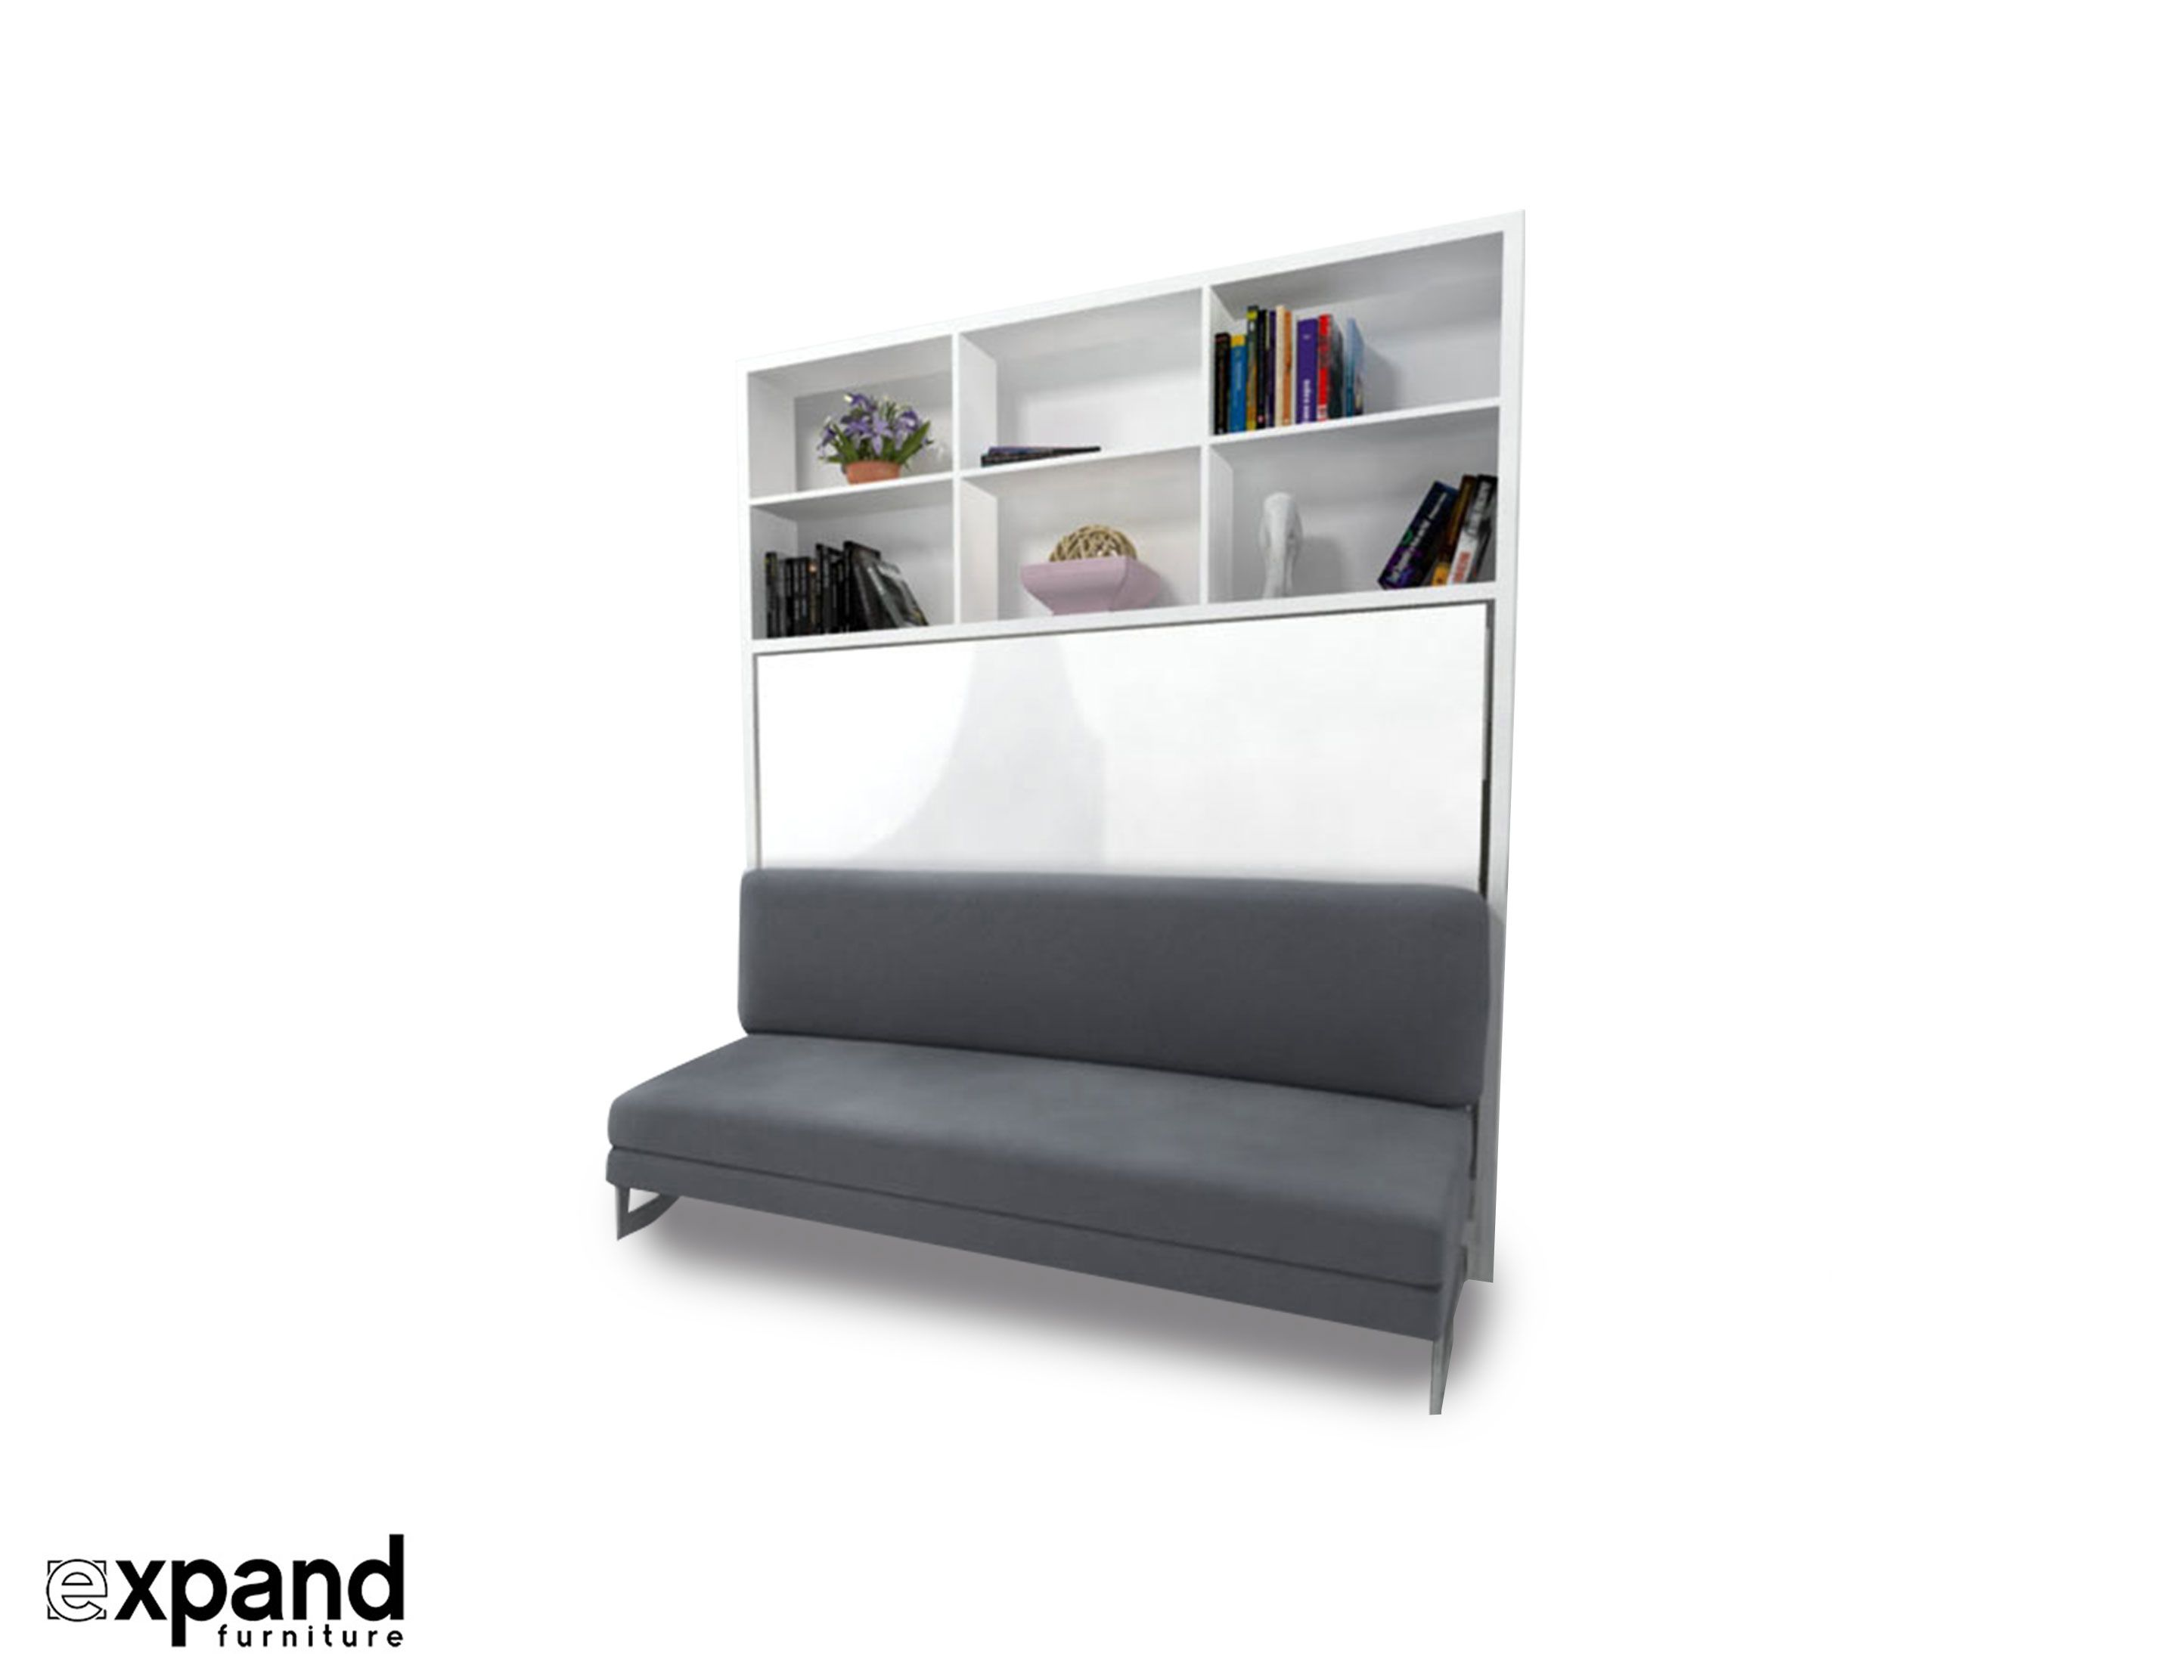 Italian Wall Bed Sofa Expand Furniture Murphy bed